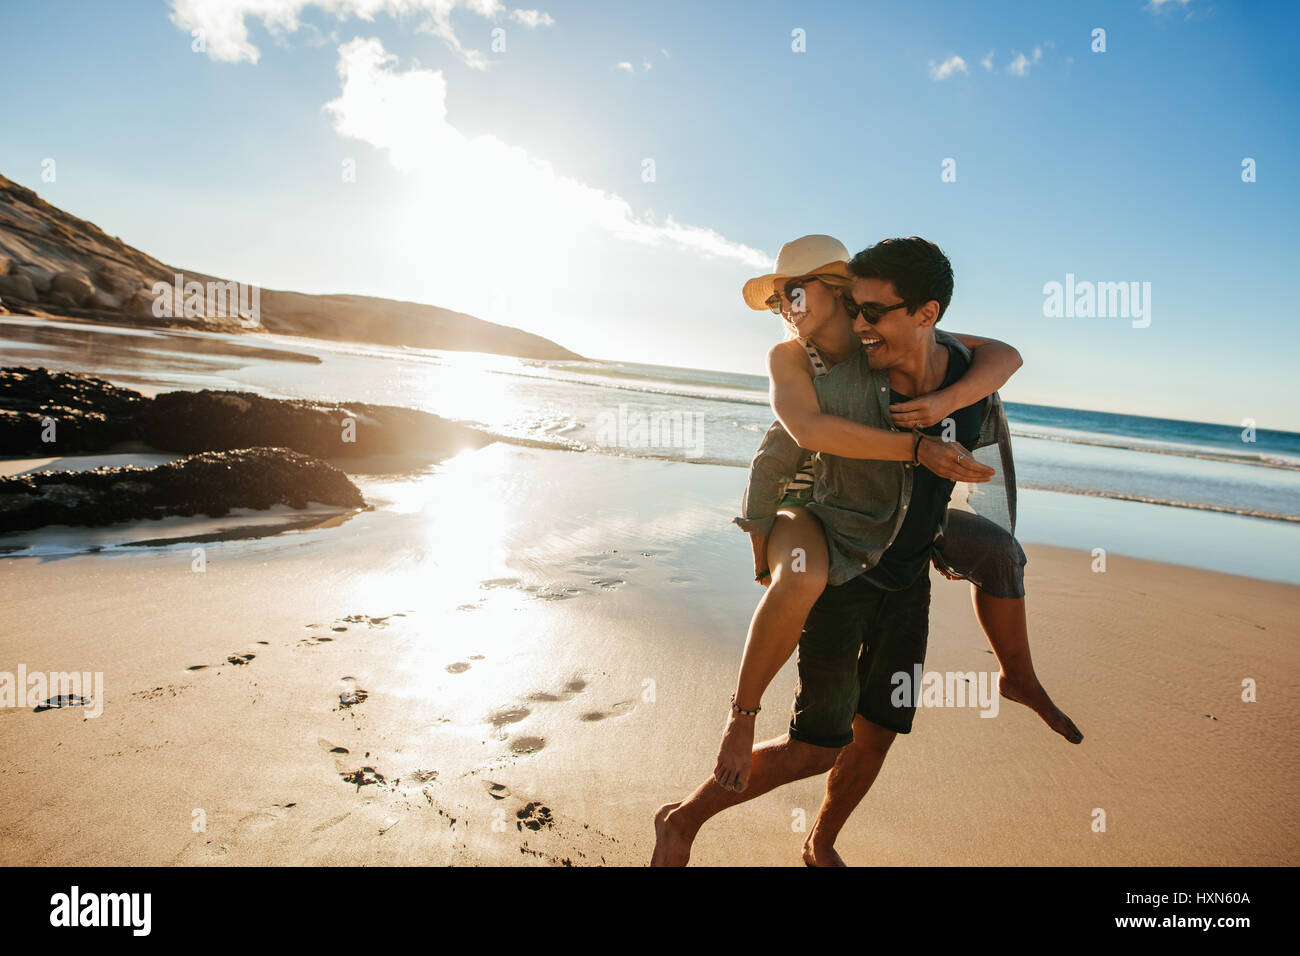 Romantic young couple enjoying summer holidays. Handsome young man giving piggyback ride to girlfriend on beach. - Stock Image